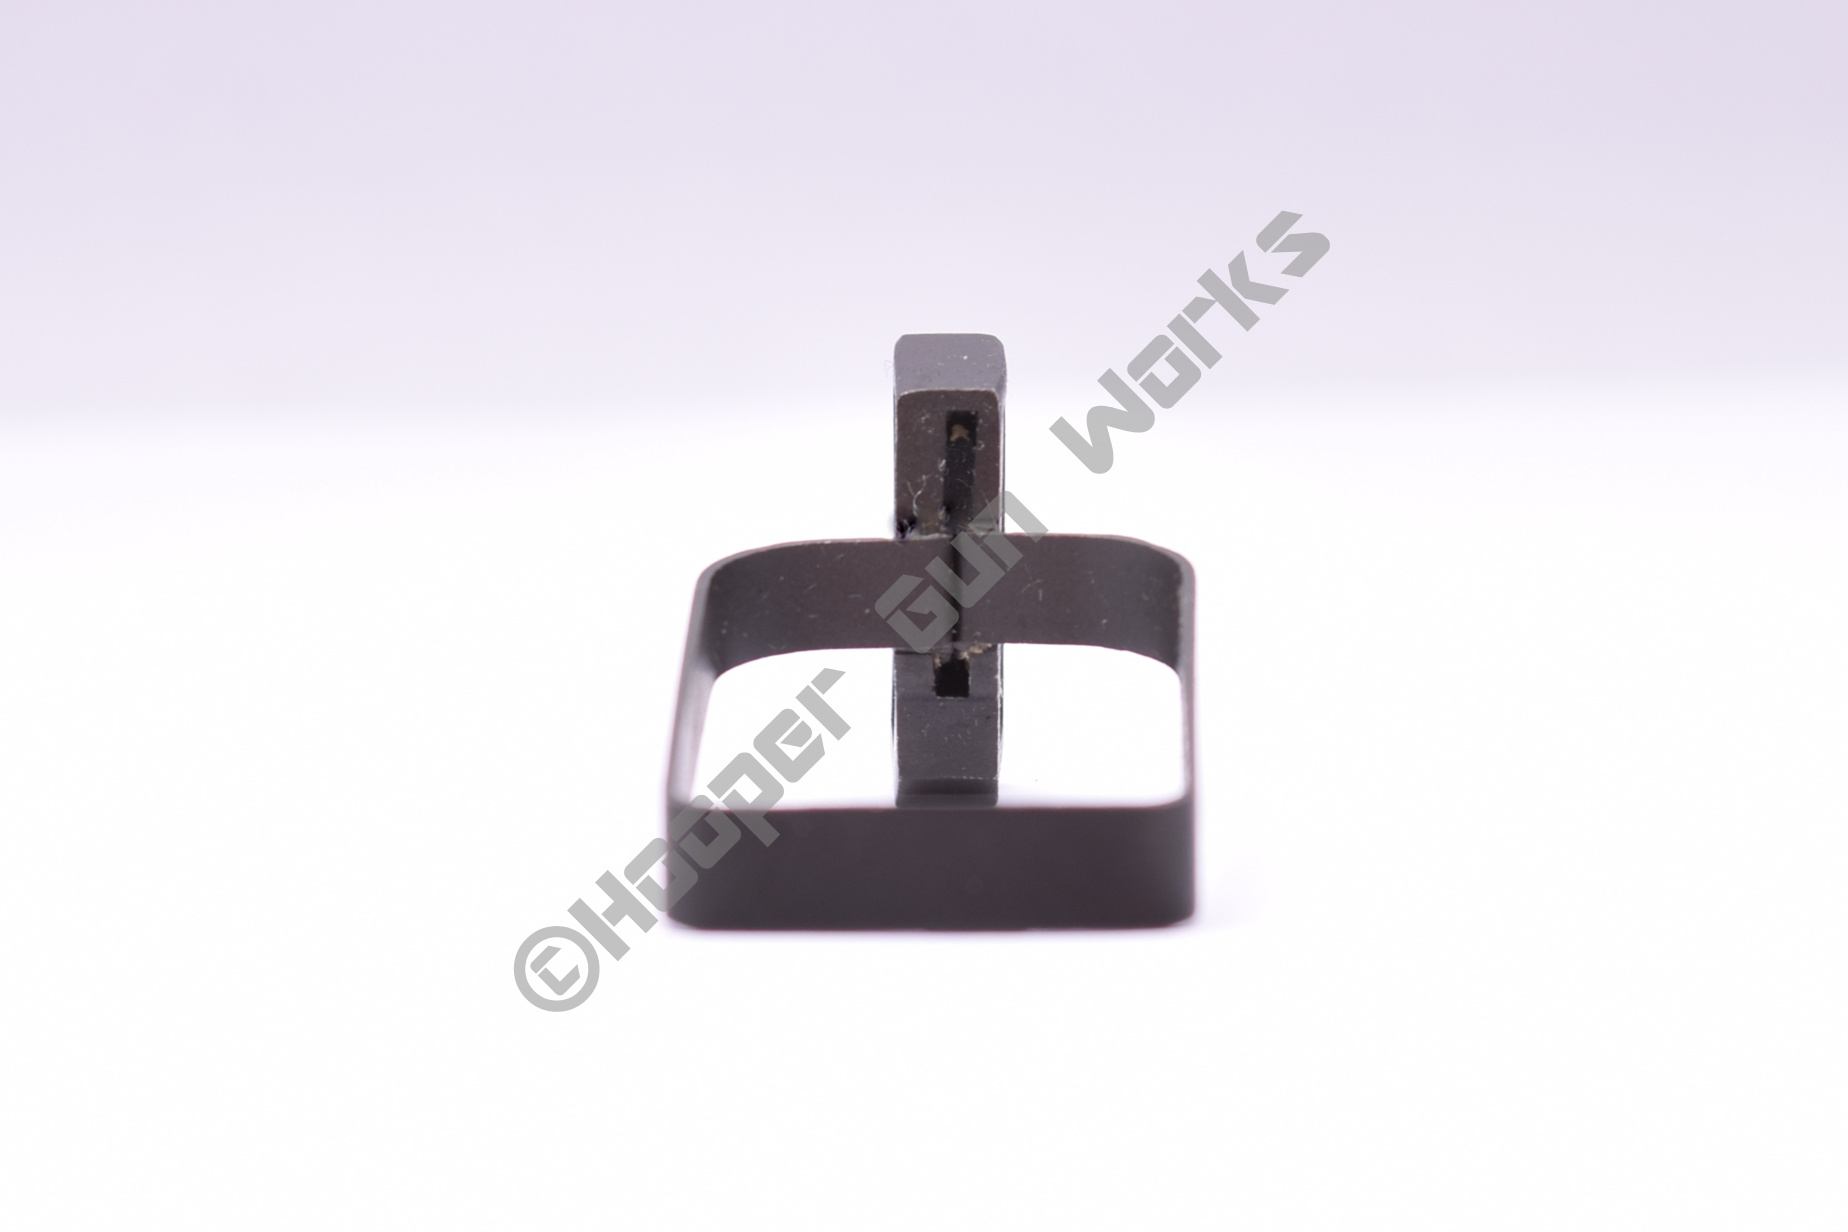 54109 rock island armory double stack tactical trigger